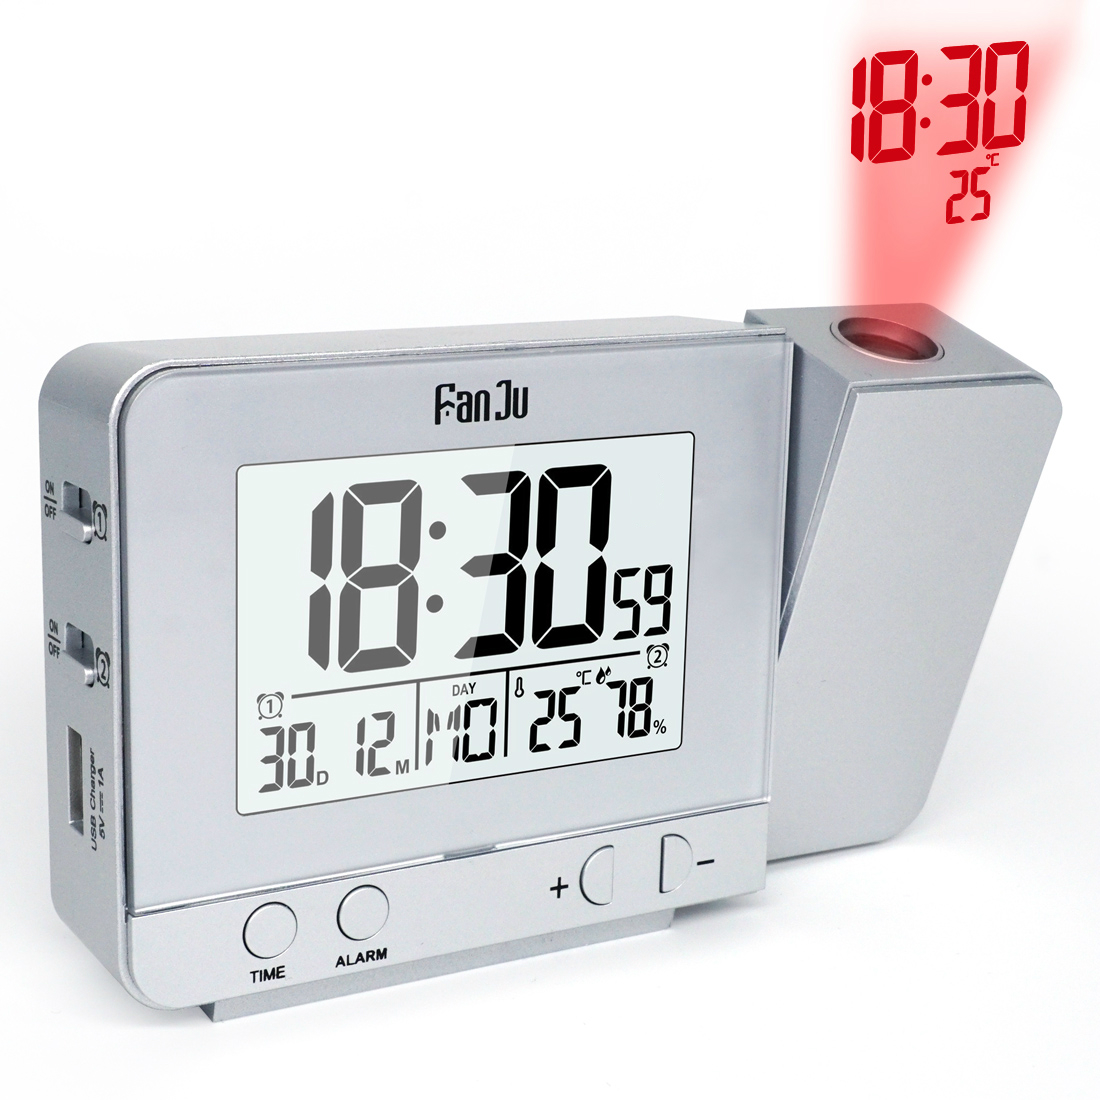 FanJu Digital Snooze Alarm Clock Projection Function Backlight Projector Desk Table FJ3531 Hot